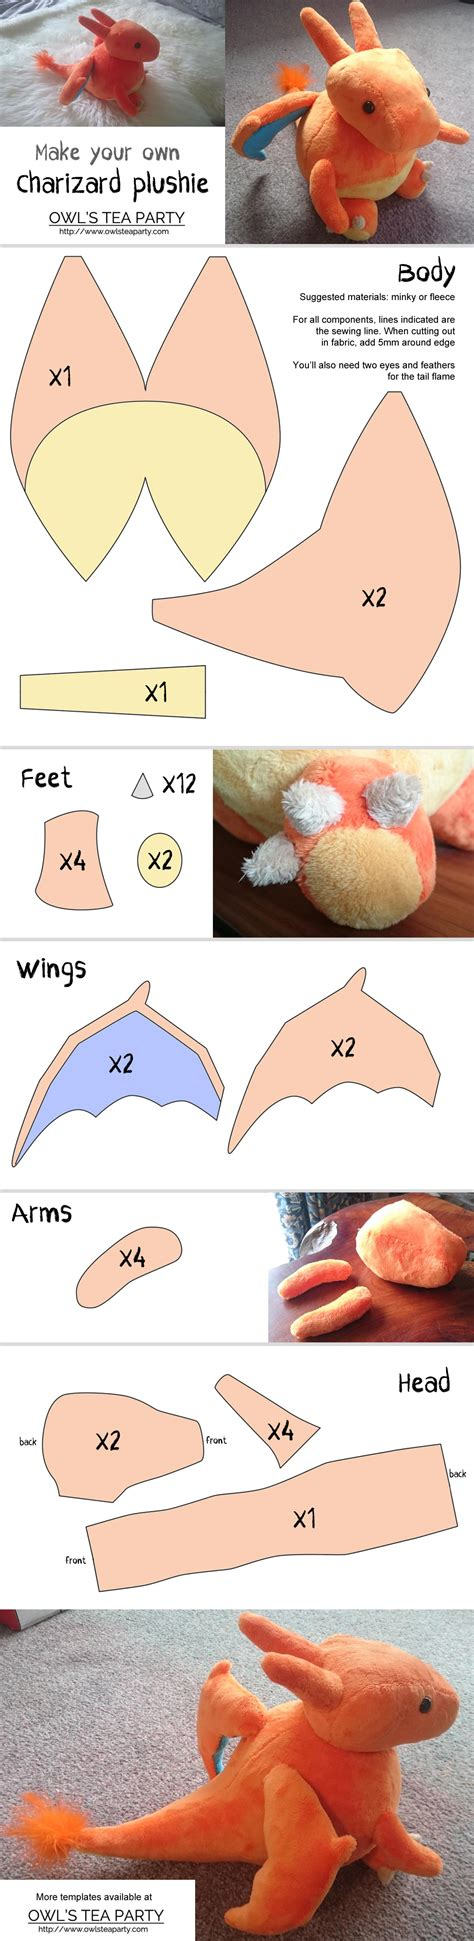 charizard template charizard or any sewing pattern owl s tea